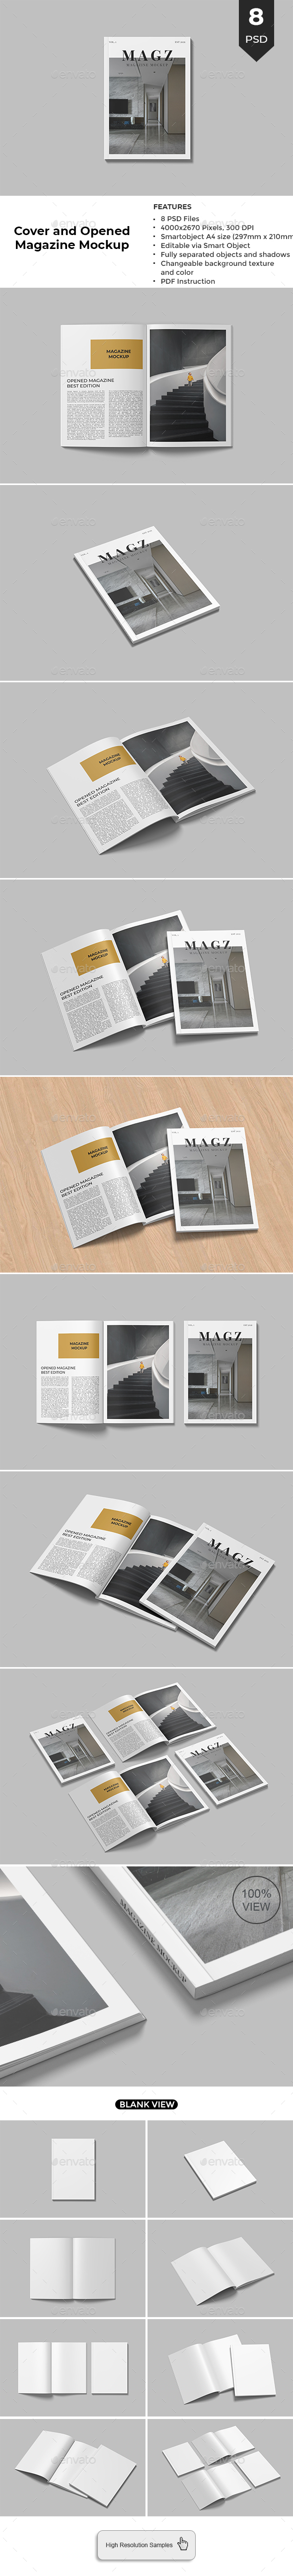 Cover and Opened Magazine Mockup